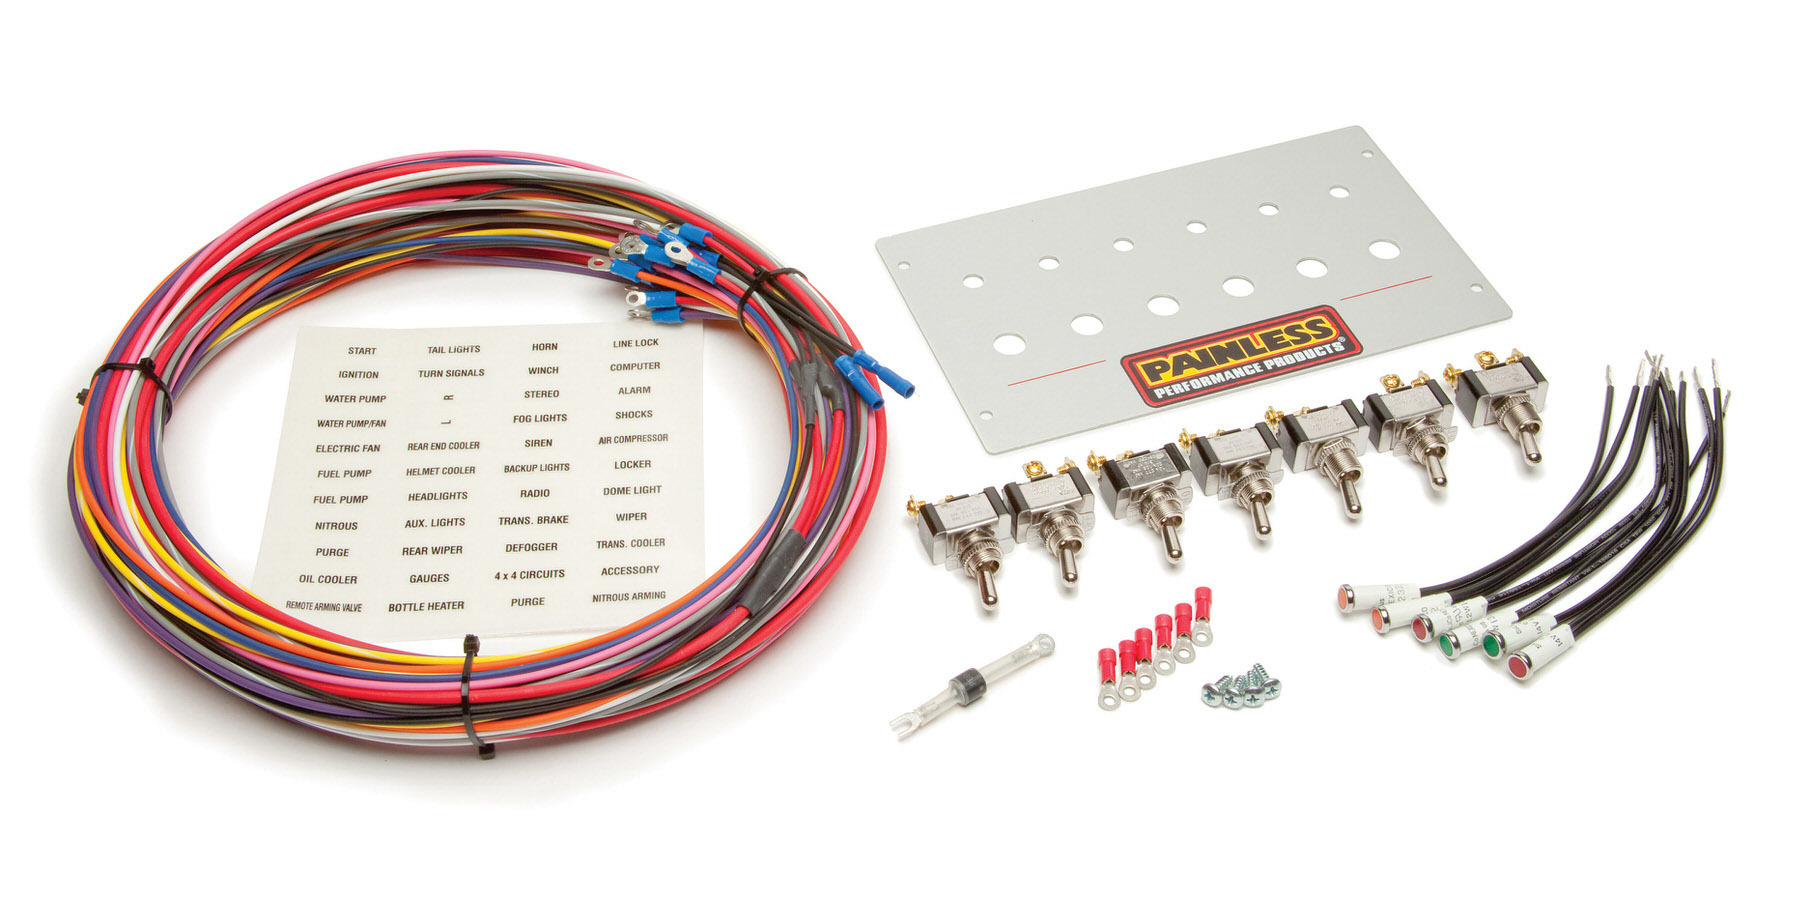 Painless Wiring 50421 Switch Panel, Radio Replacement, 8-1/2 x 5 in, 6 Toggle / 1 Momentary Toggle, Indicator Lights, Harness, Brushed, Ford Mustang 1987-93, Kit